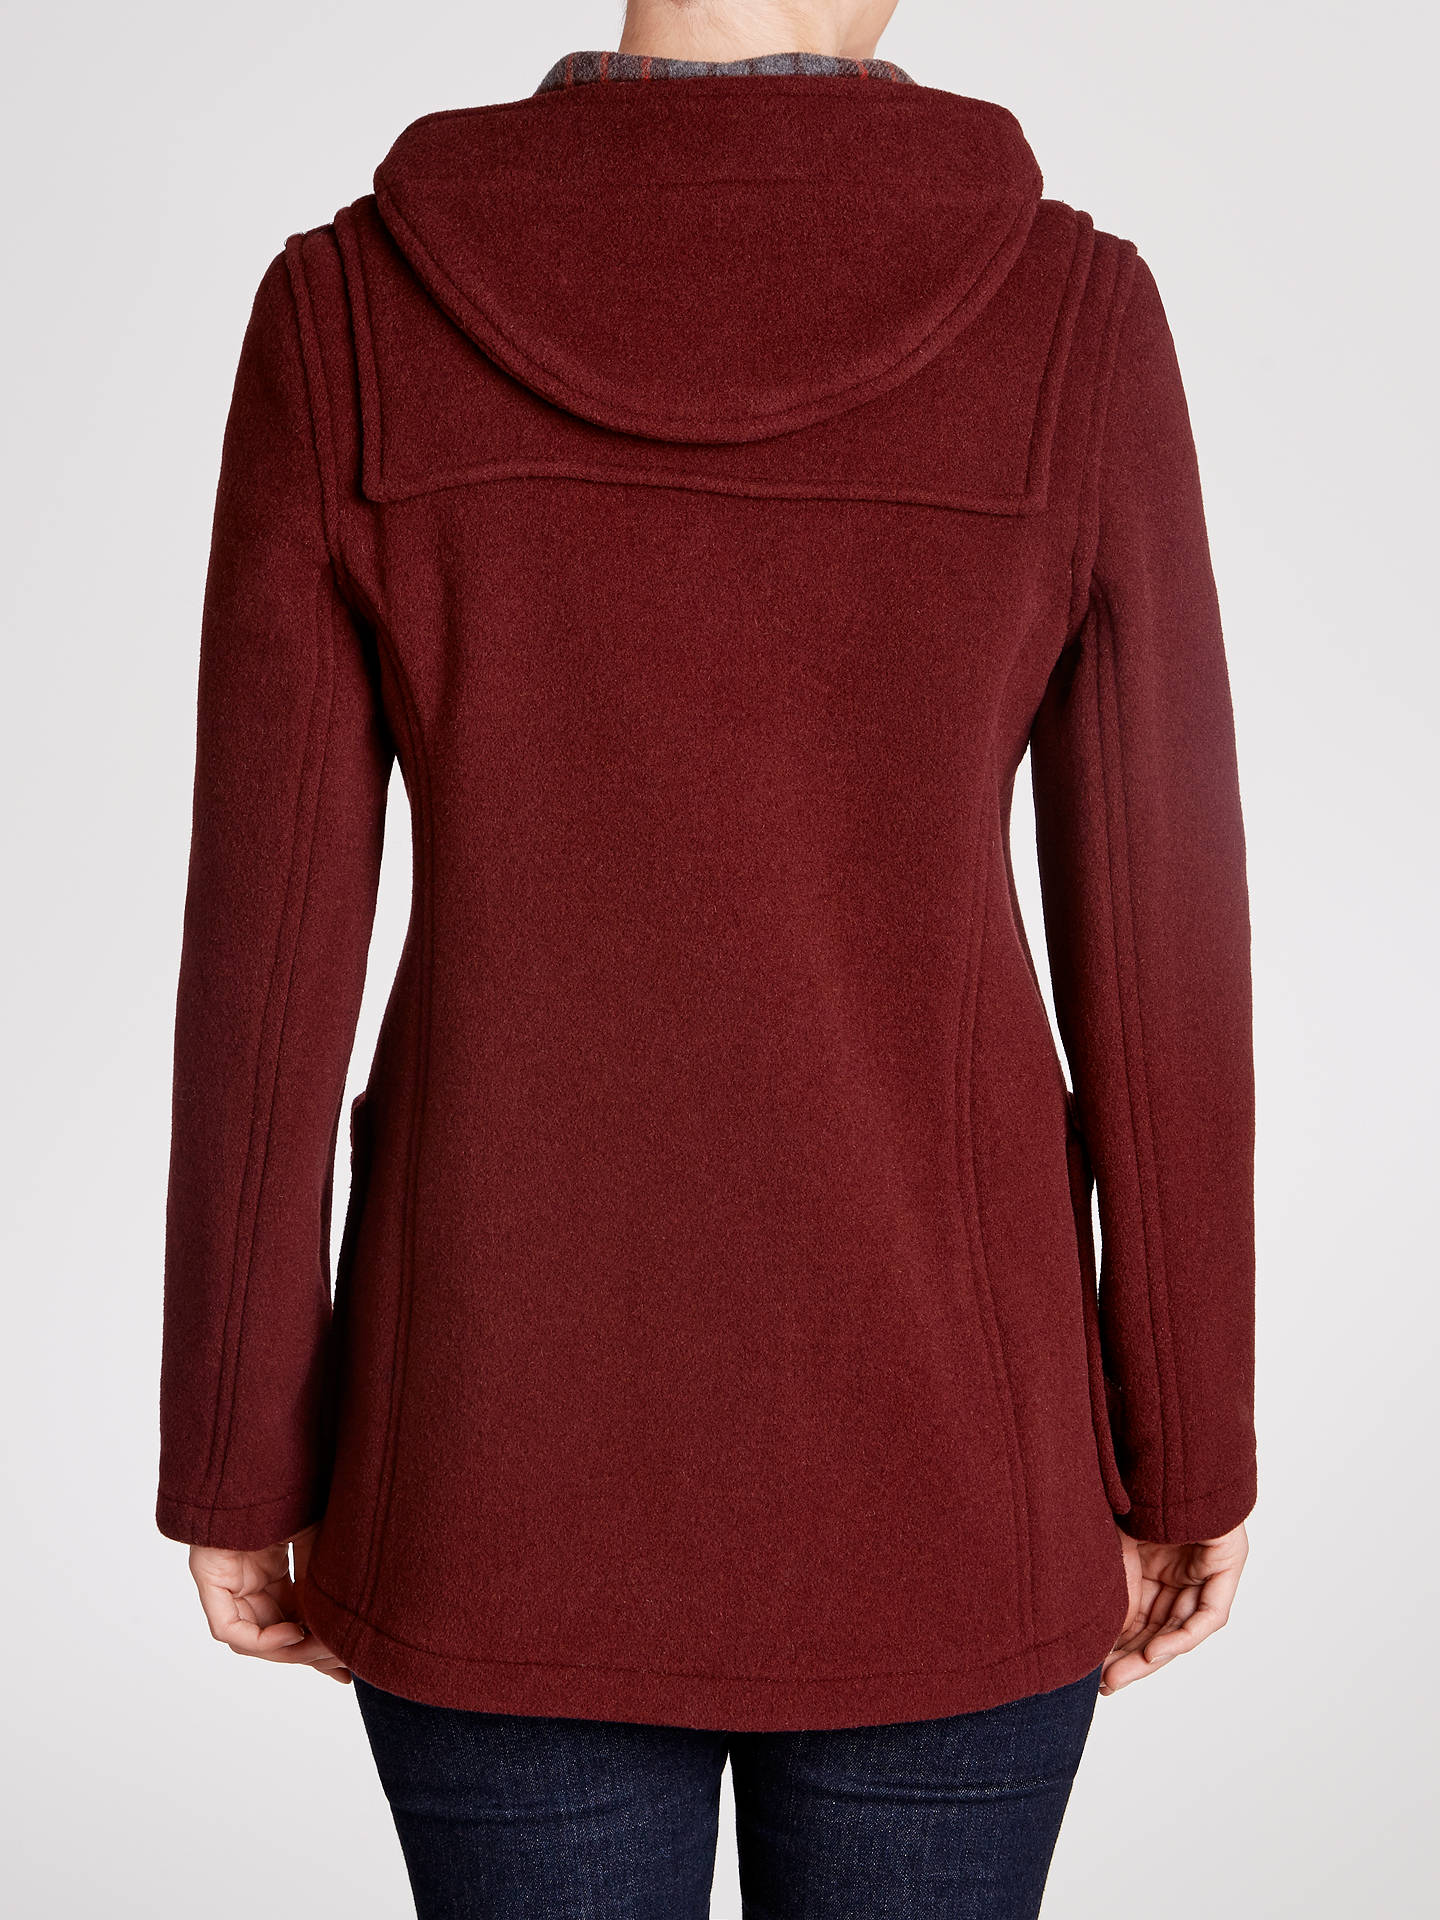 Buy Gloverall Duffle Coat, Burgundy, 12 Online at johnlewis.com